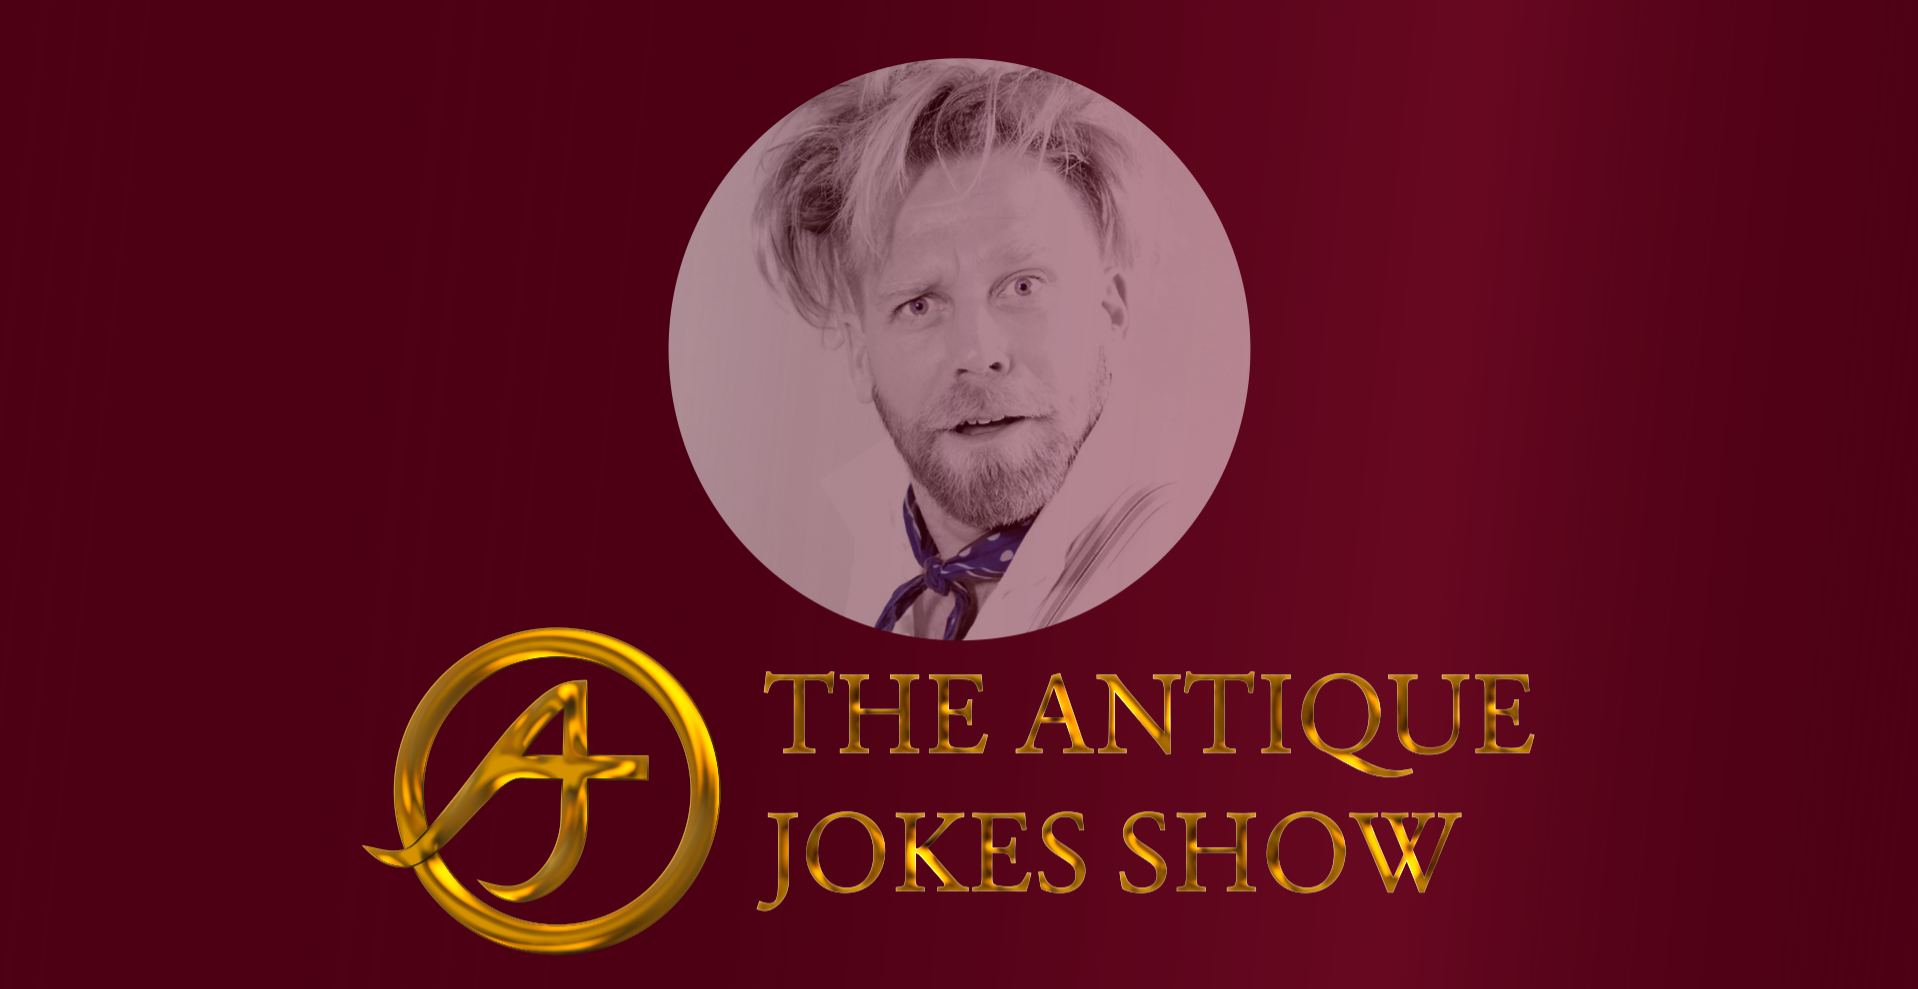 The Antique Jokes Show